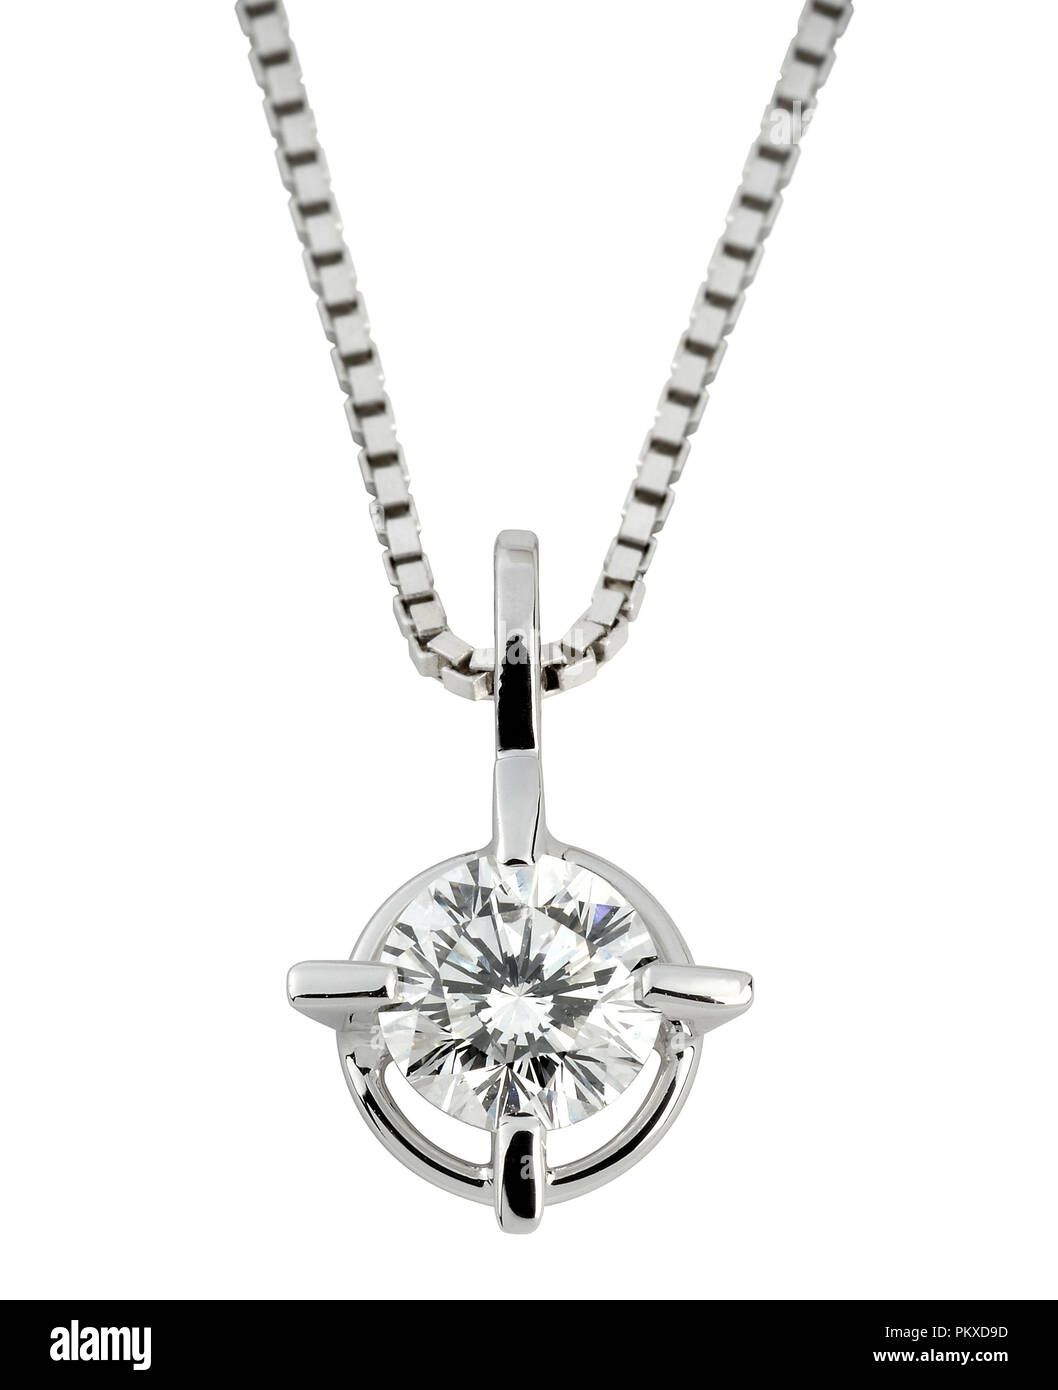 Circular solitaire diamond pendant with a large faceted gemstone in silver or platinum hanging on a box chain isolated on white - Stock Image